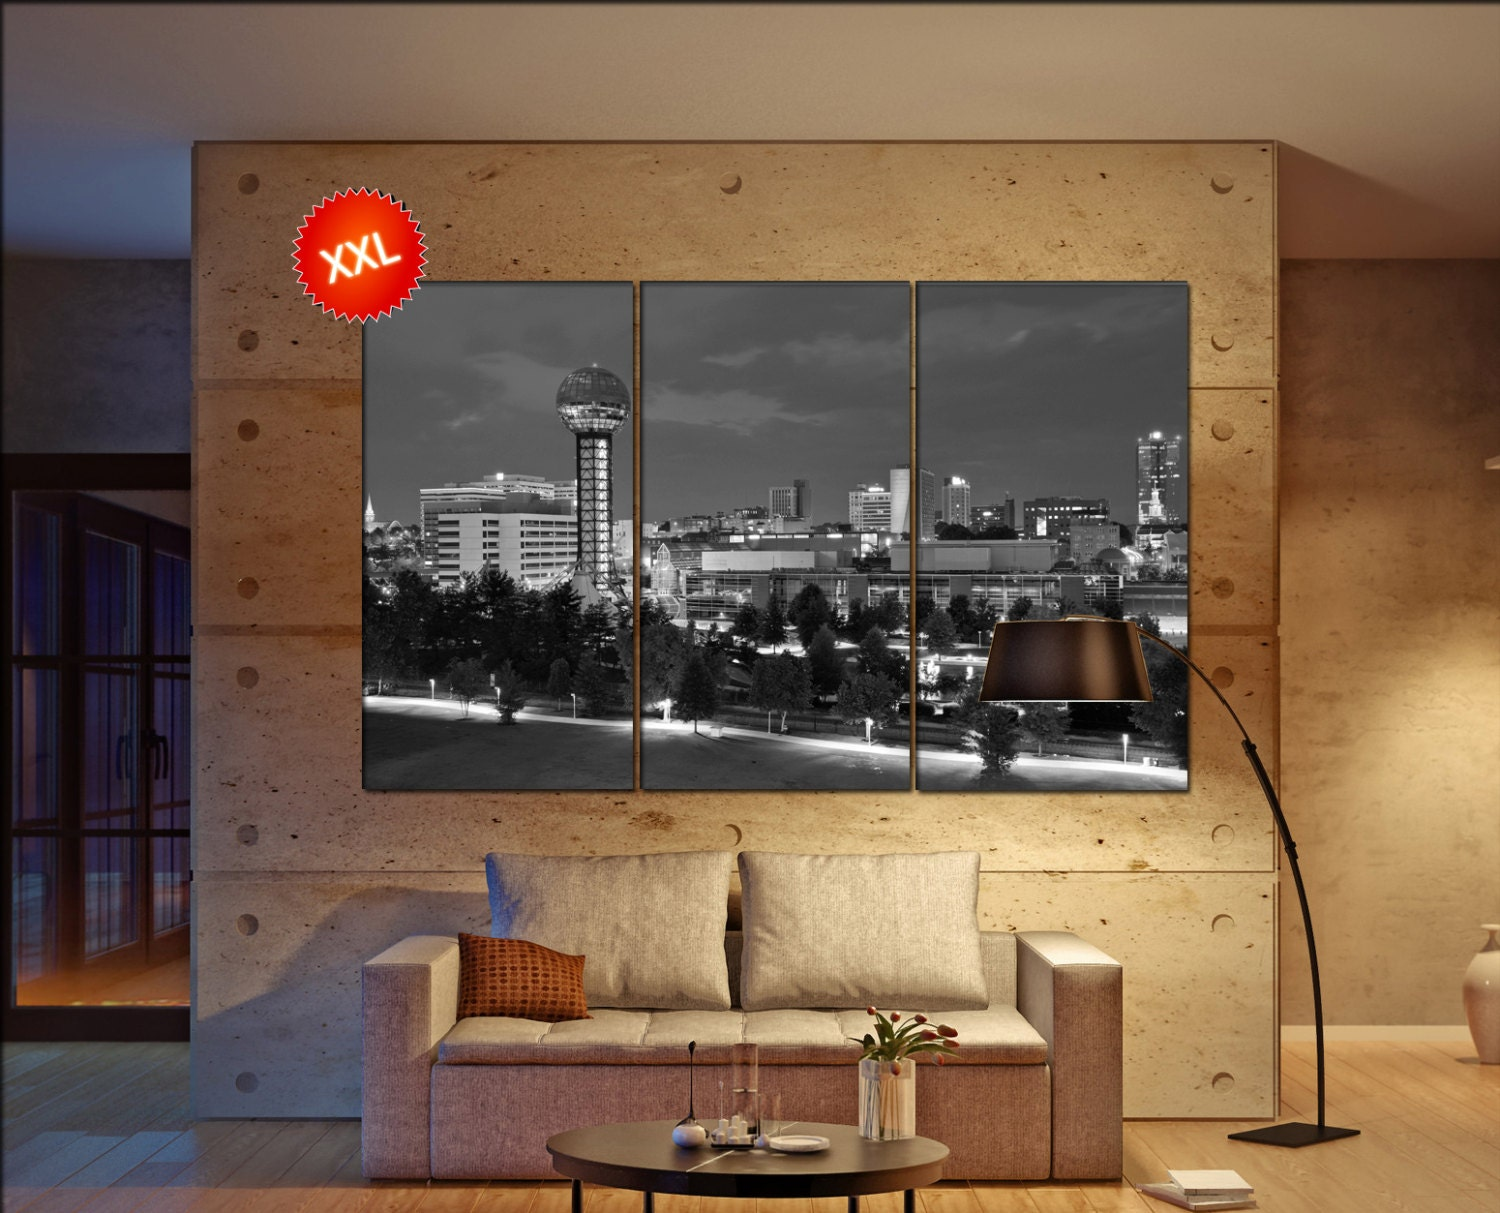 Knoxville Canvas Art Prints Large Wall Black White Print Tennessee USA City Cityscape Skyline Office Decor